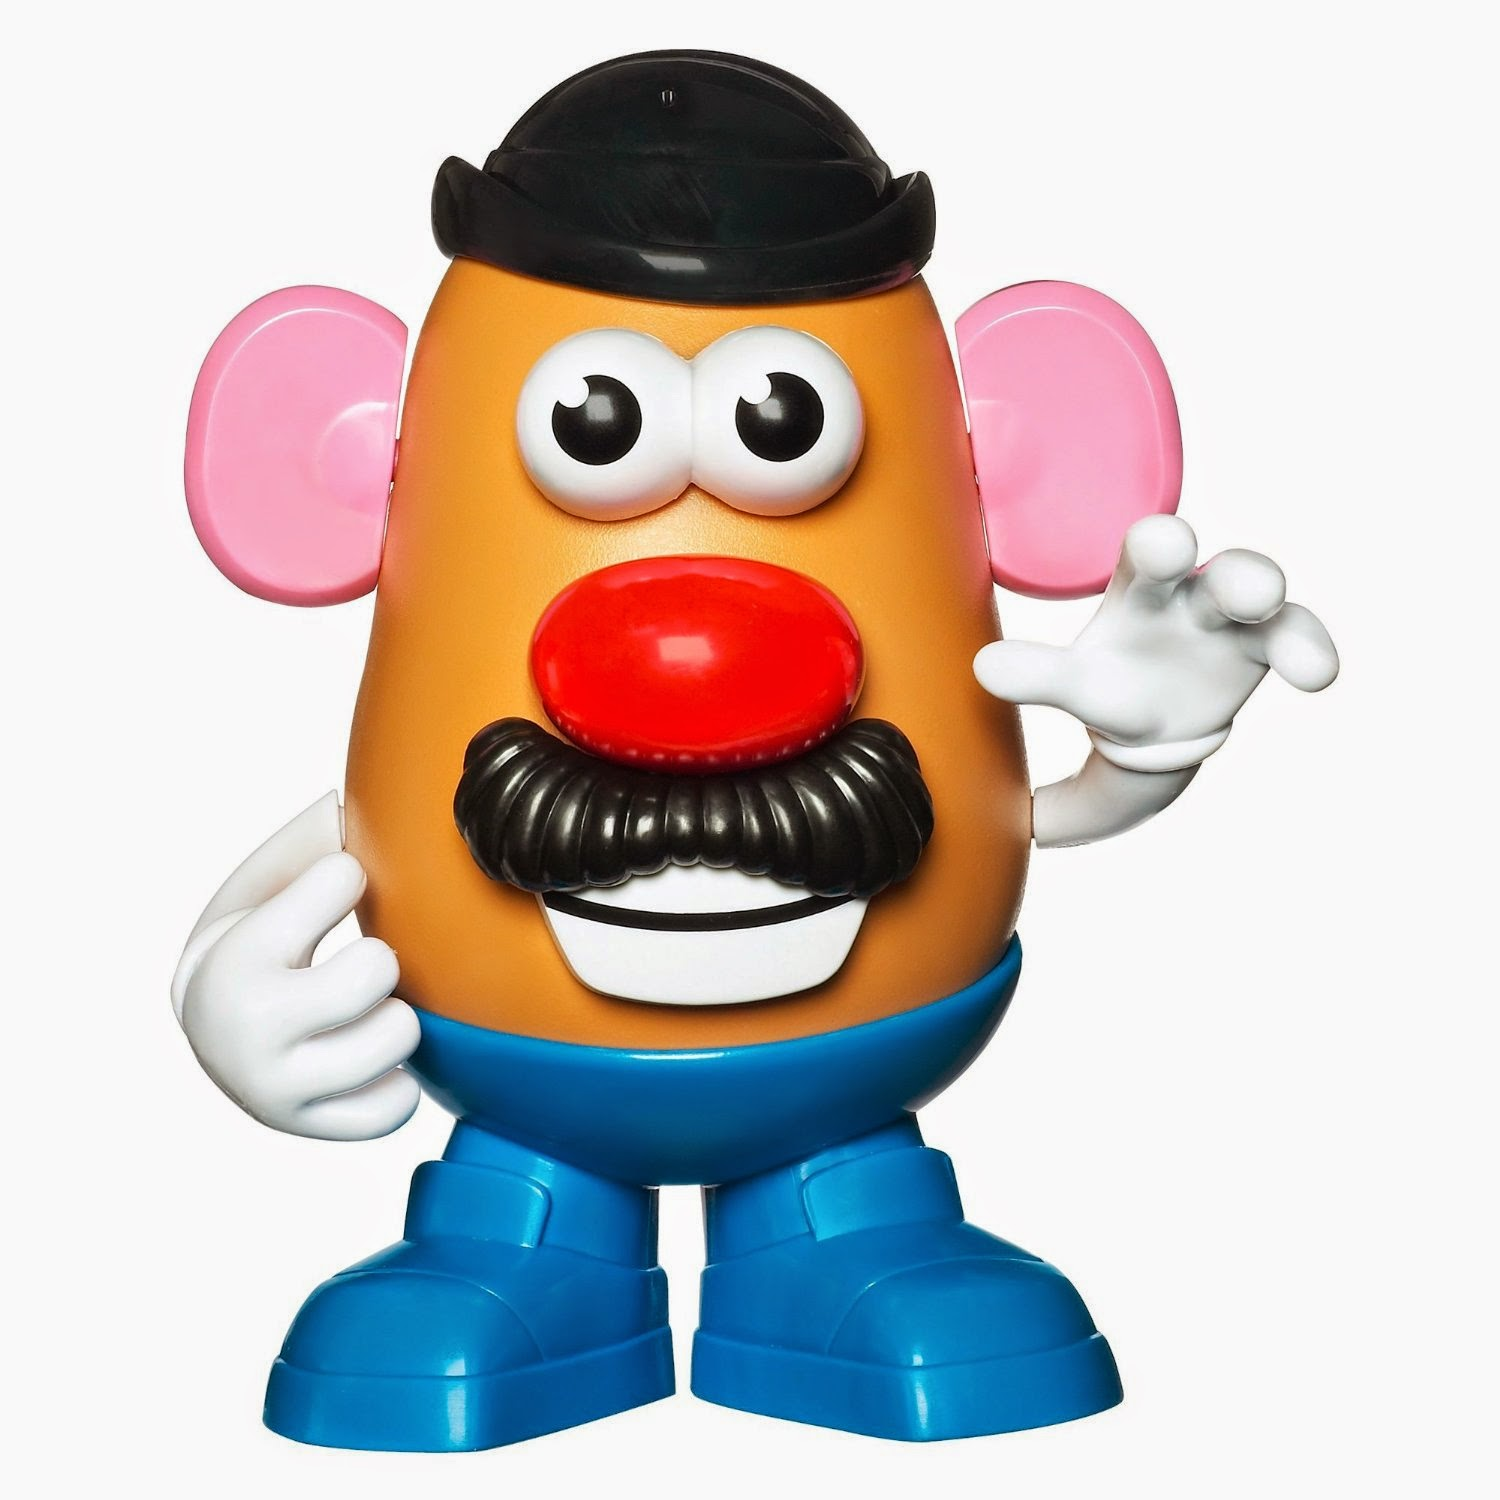 Get Playskool's Mr. OR Mrs. Potato Head for $5!